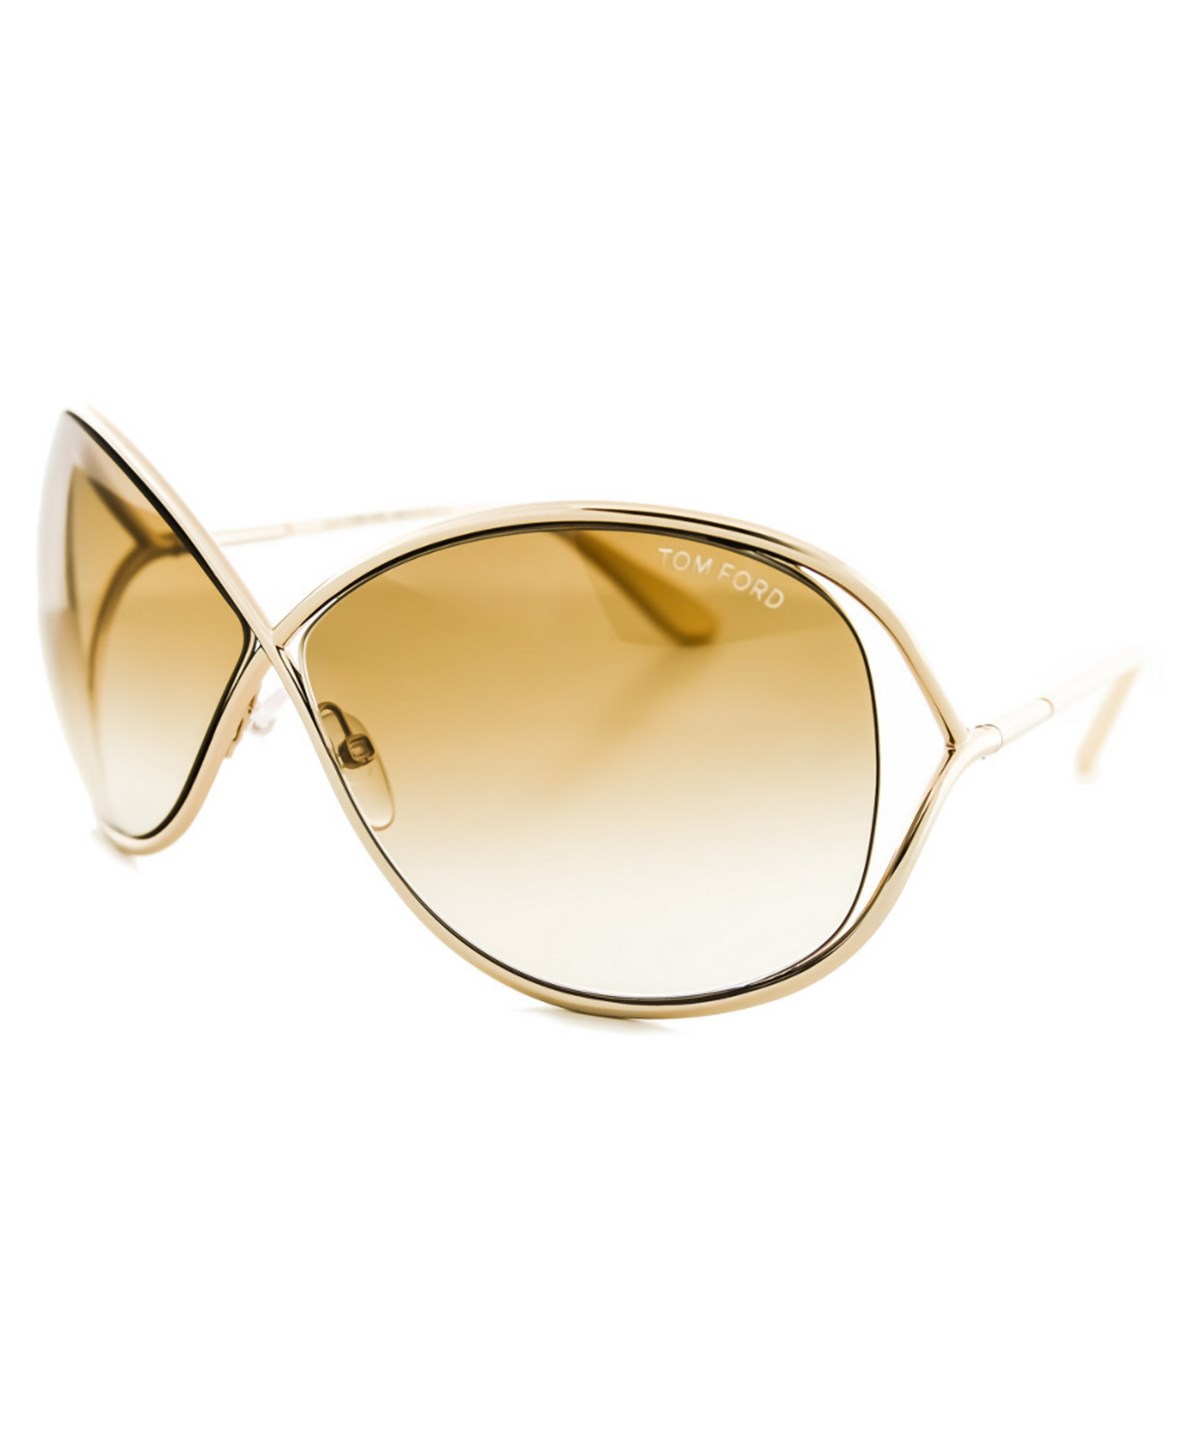 Miranda 68Mm Open Temple Oversize Metal Sunglasses - Shiny Rose Gold/ Brown, 28F